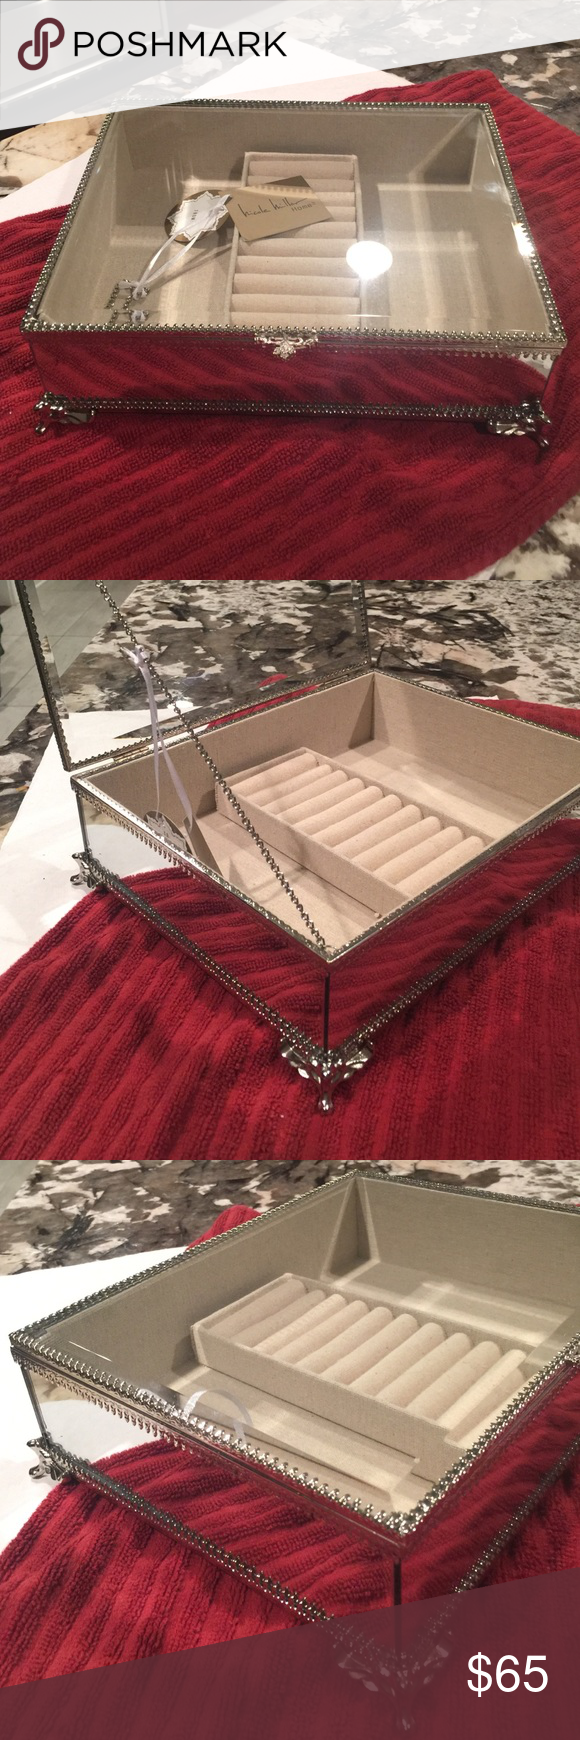 Nicole Miller Jewelry Box Captivating Nwt Nicole Miller Mirrorglass Jewelry Box Mirrored Sides Glass Top Decorating Inspiration